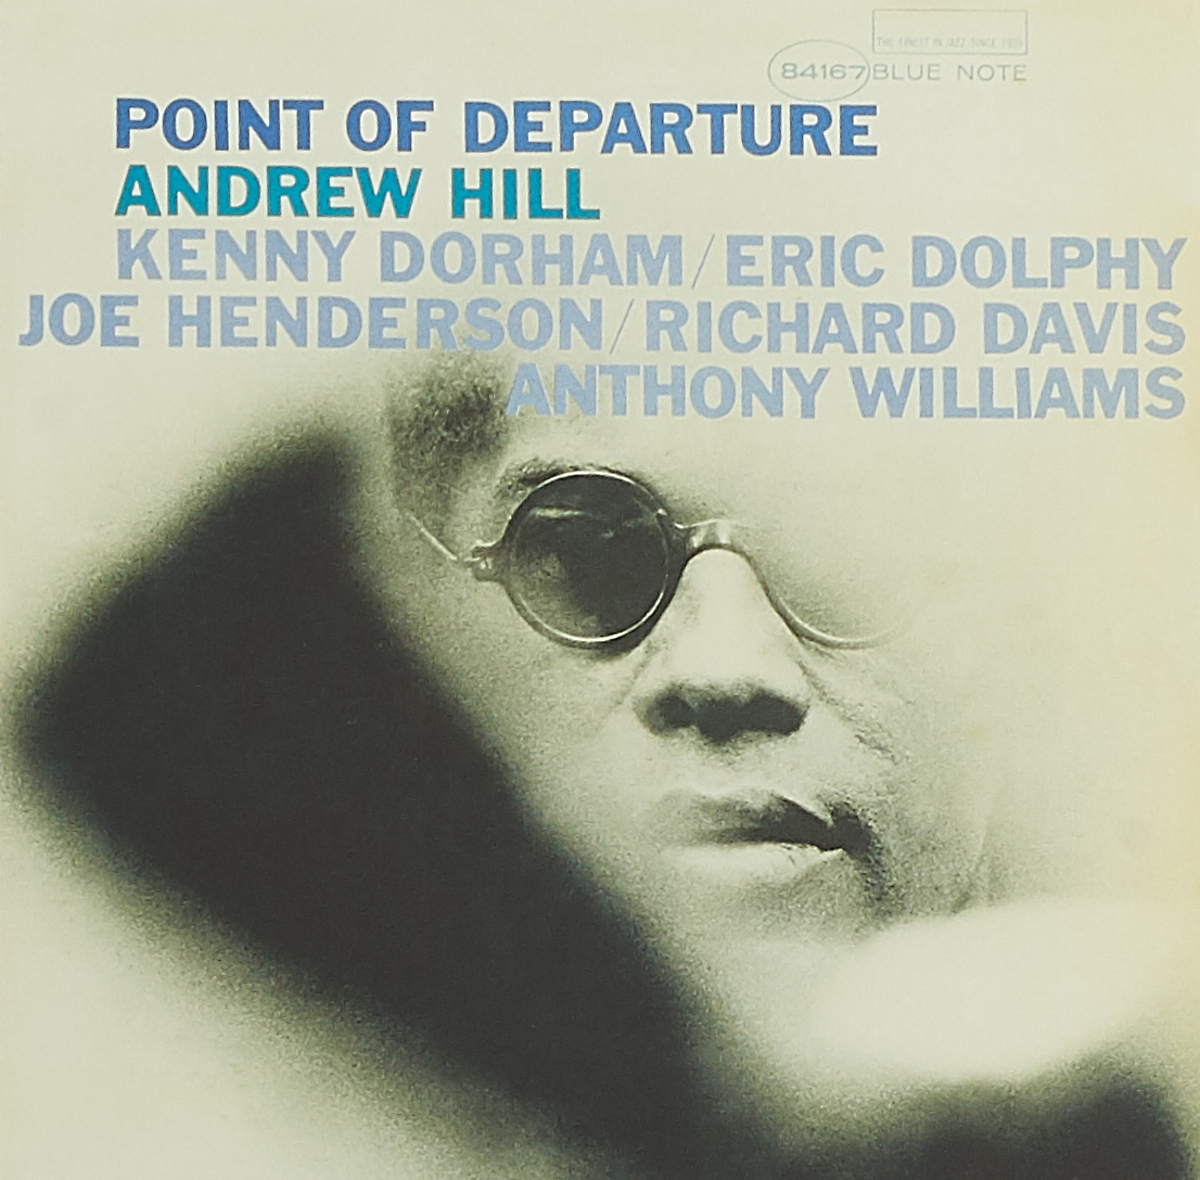 HILL, ANDREW. POINT OF DEPARTURE